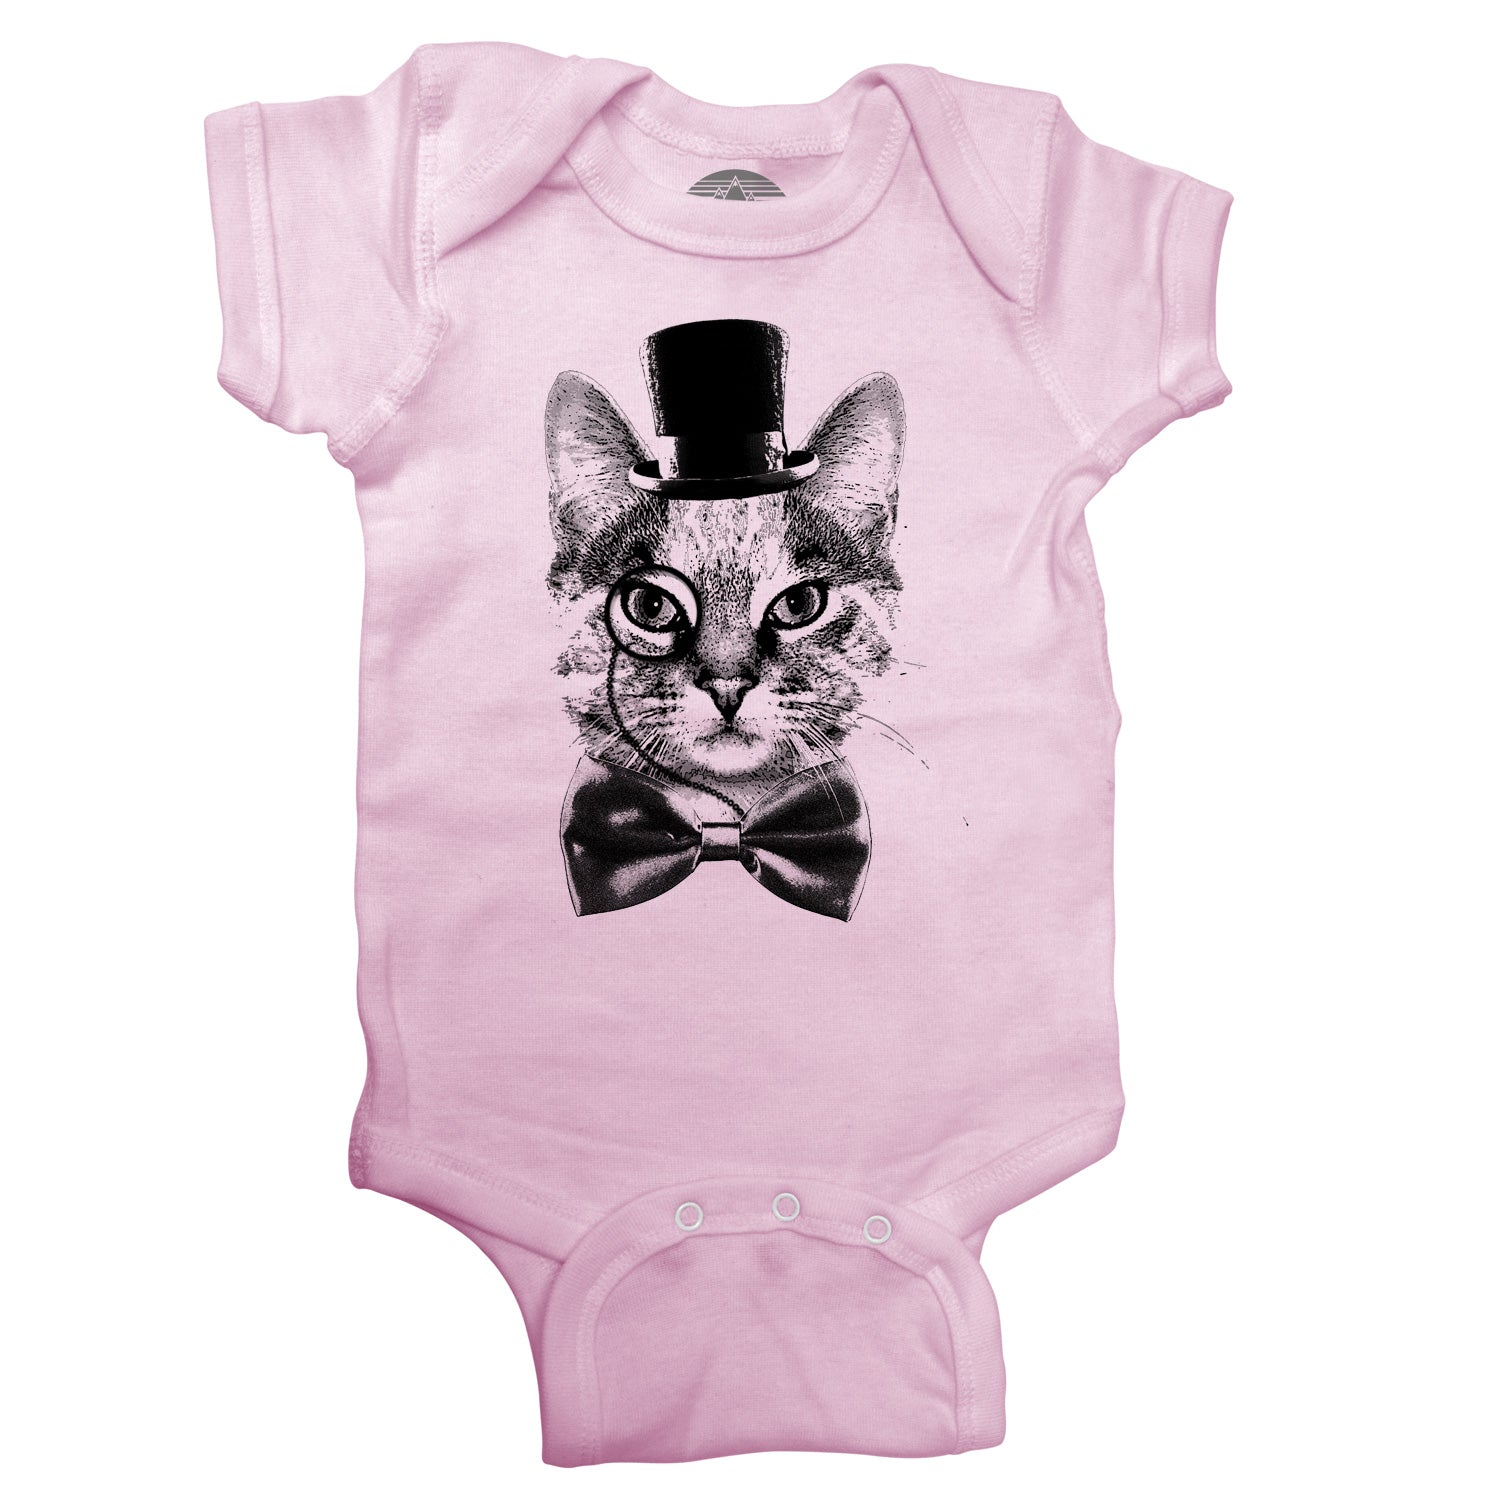 Steampunk Cat Infant Bodysuit - Unisex Fit